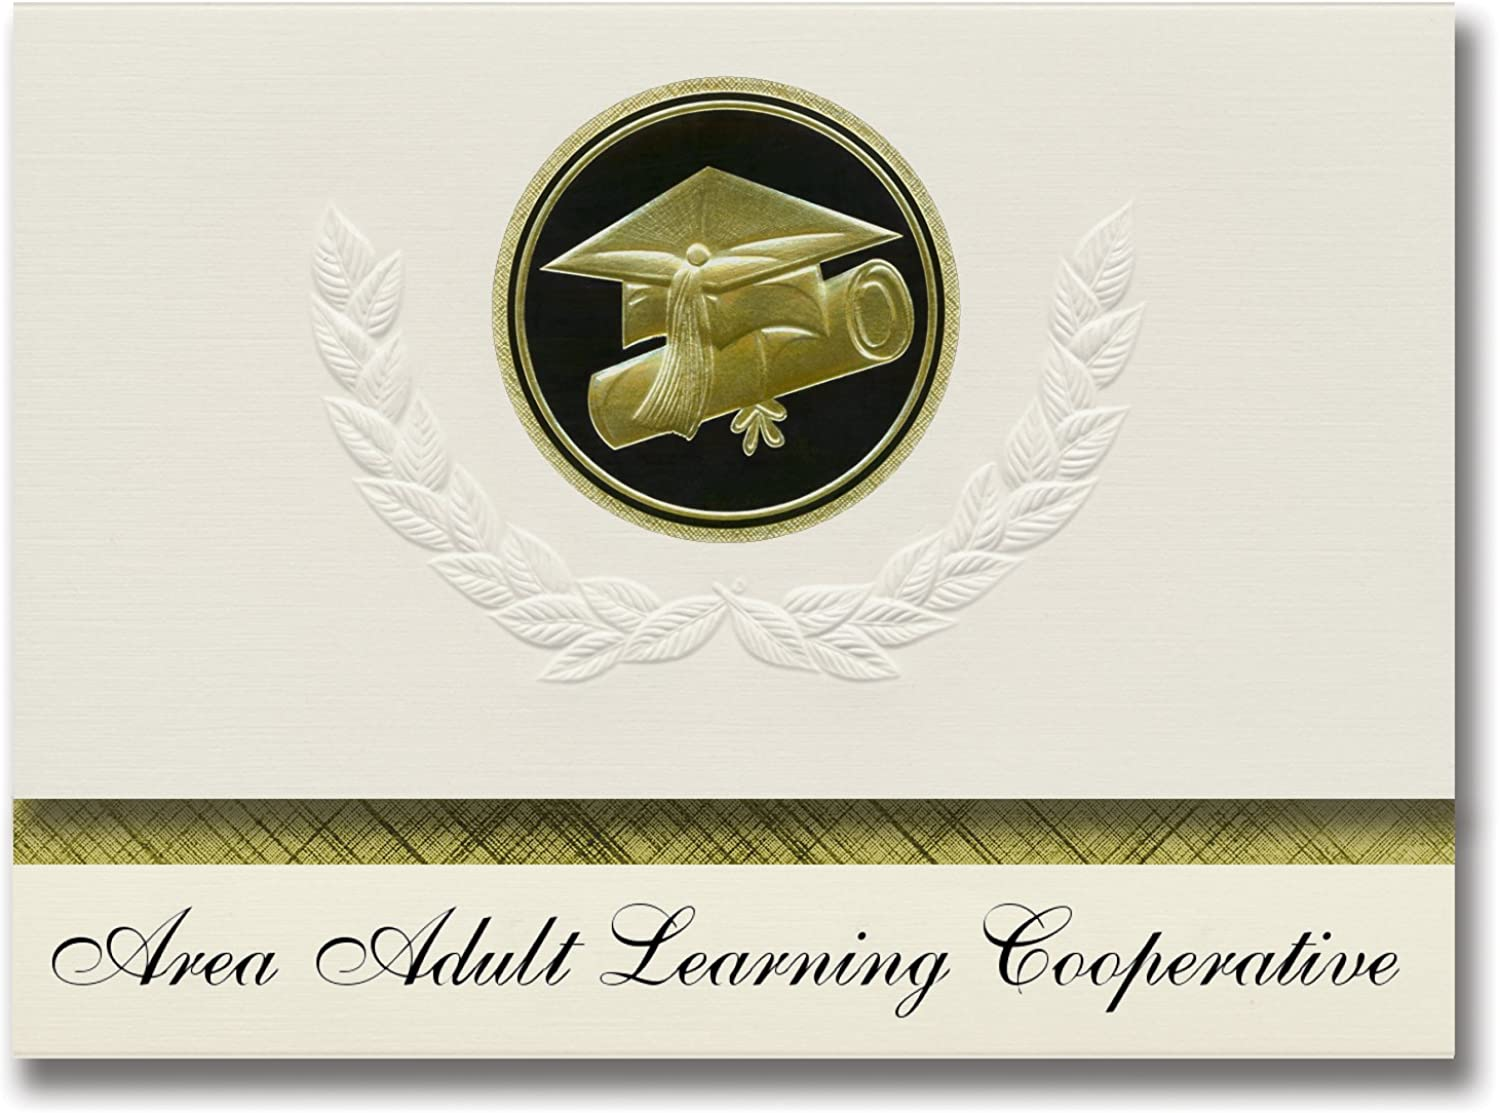 Signature Announcements Area Adult Learning Cooperative (Lesueur, MN) Graduation Announcements Presidential-Stil, Elite-Paket mit 25 Kappen & Diplomversiegelung, Schwarz & Gold B07CD2KZJ9 | Marke